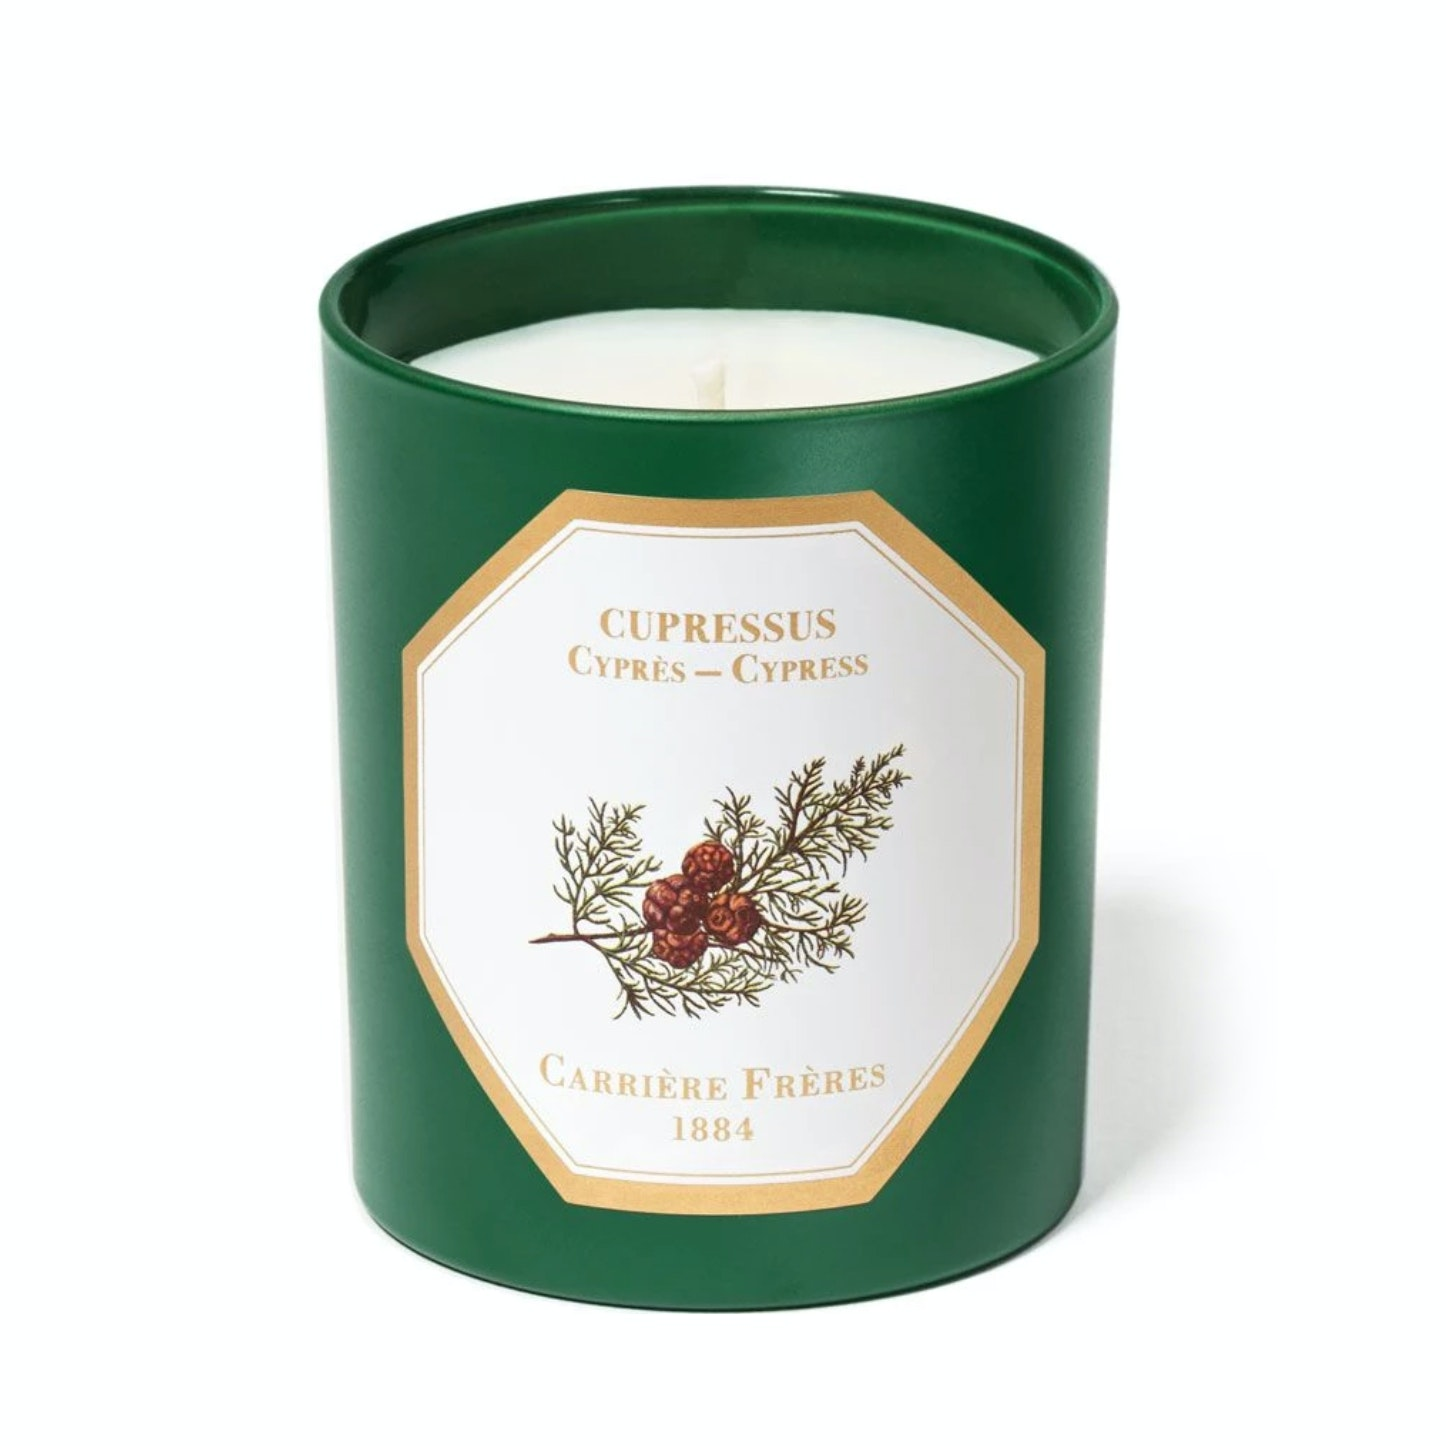 Carrière Frères Cypress Candle